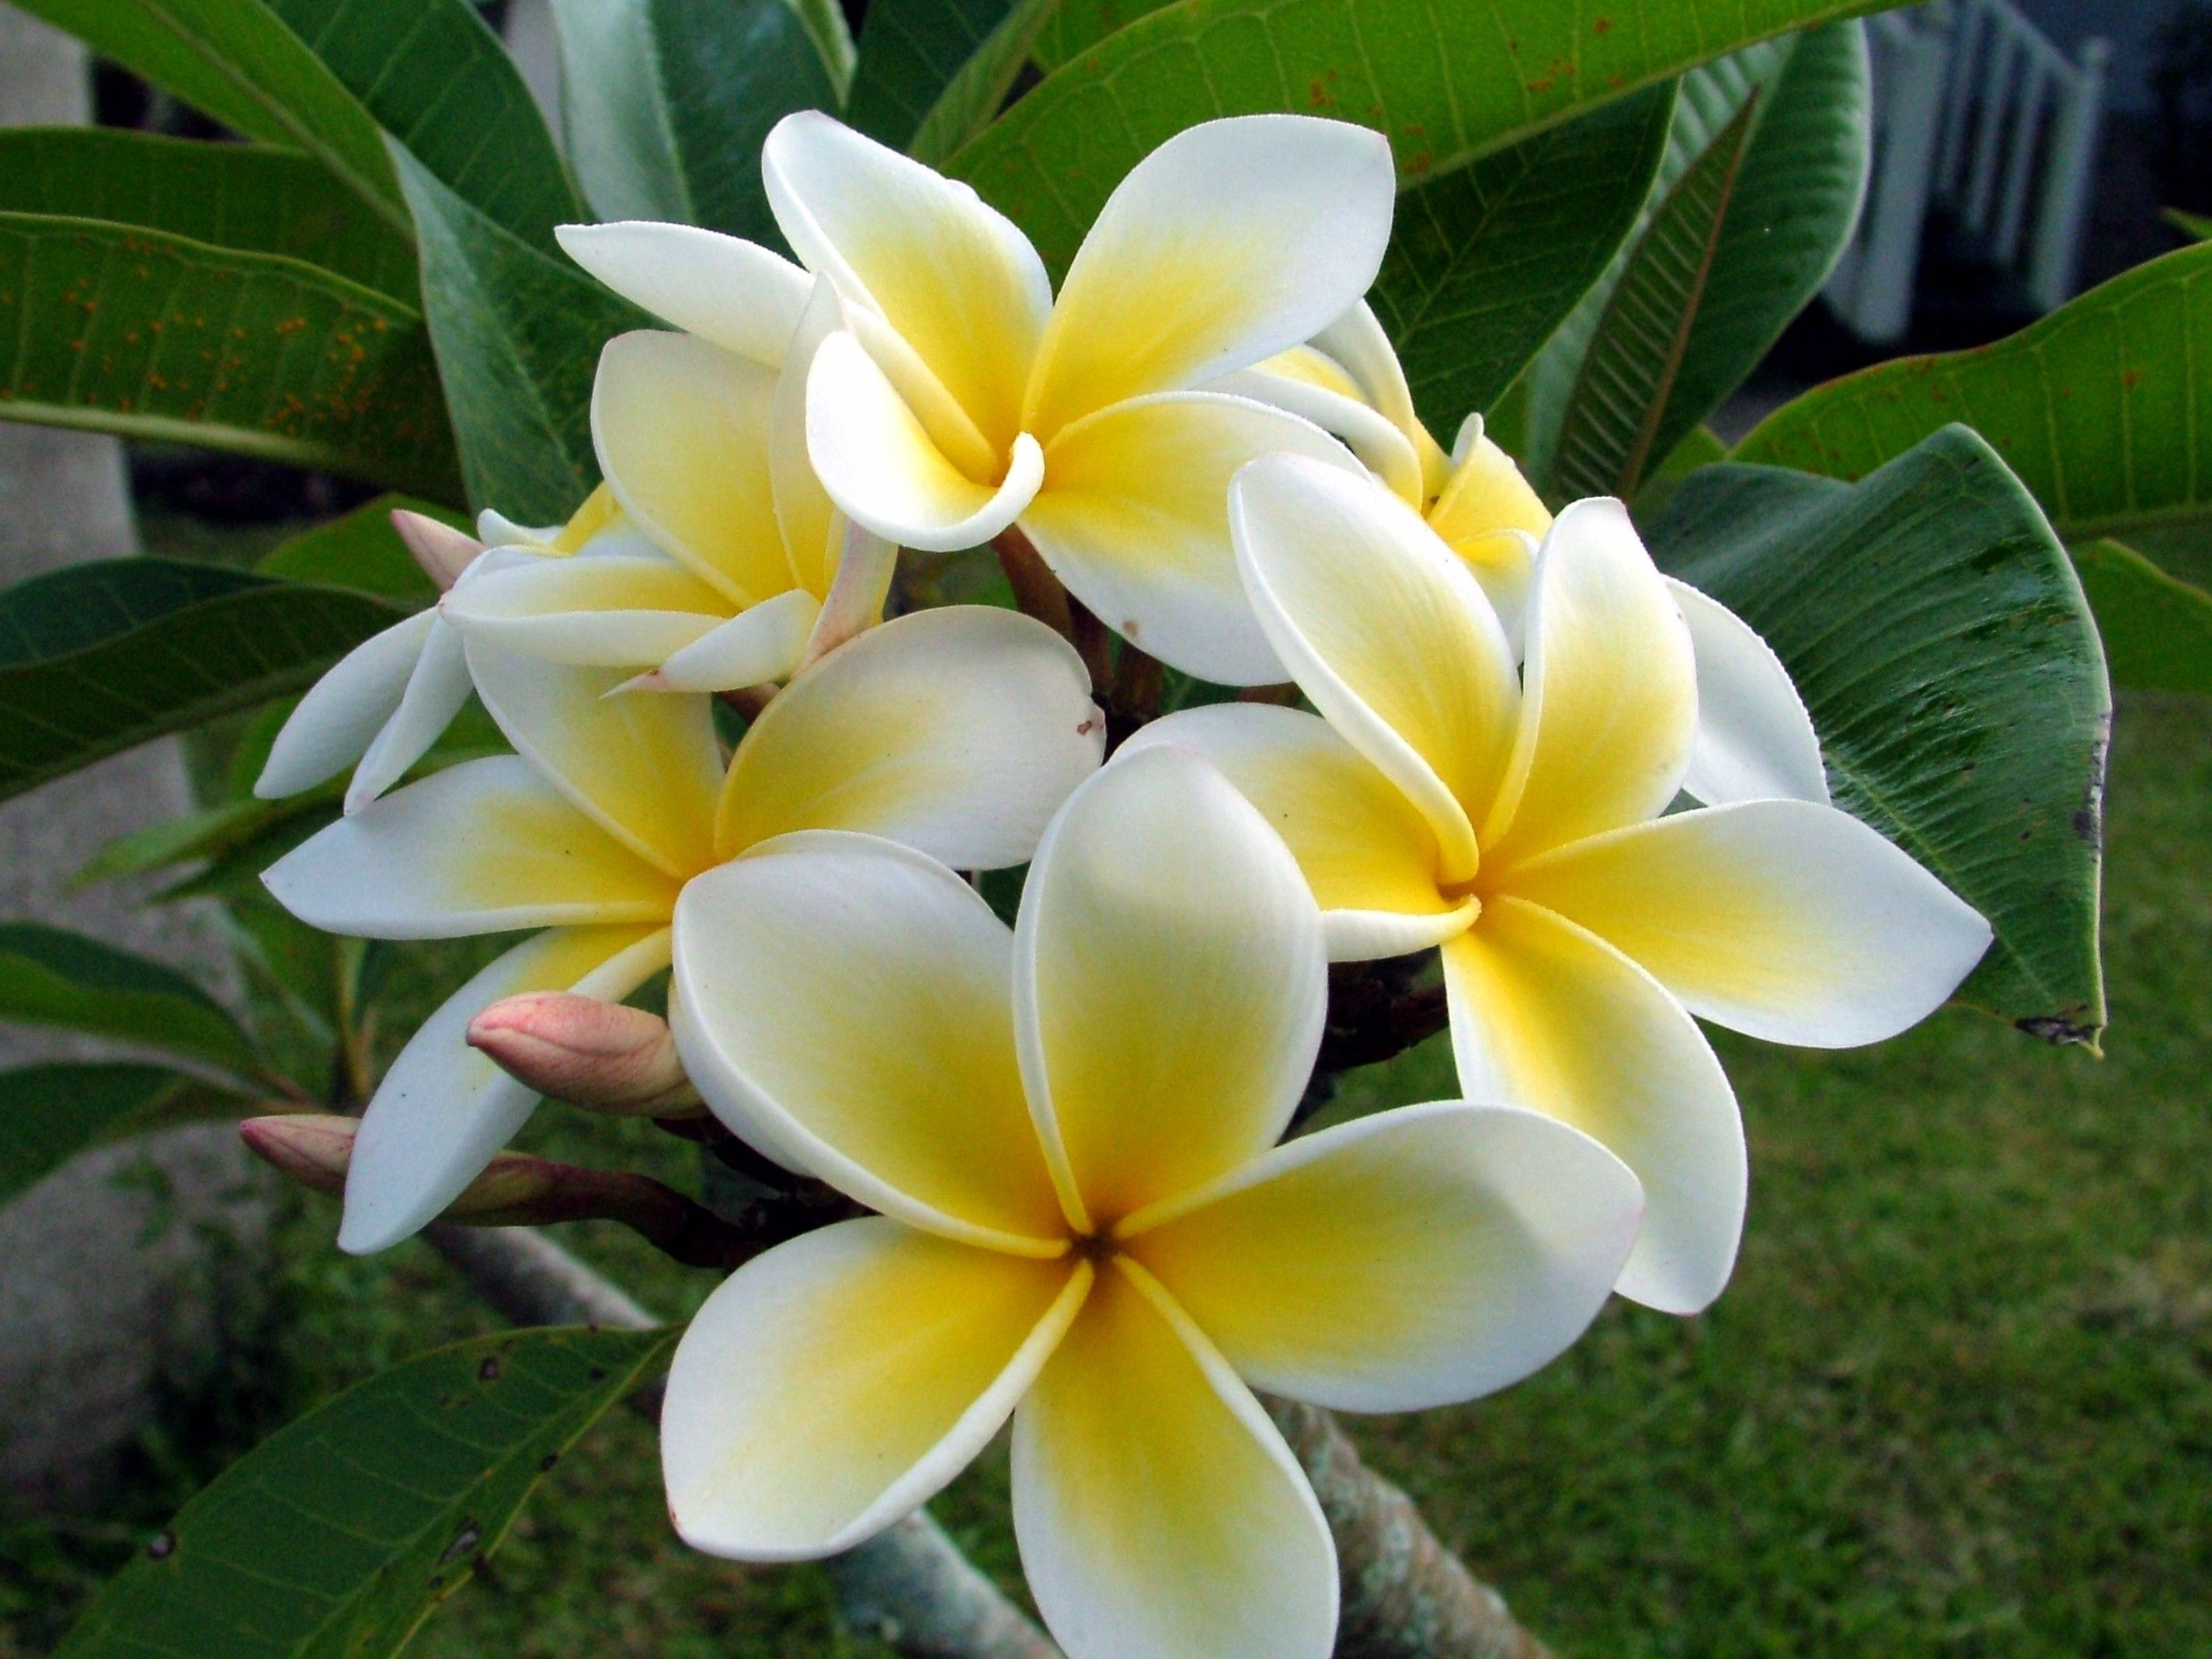 Hawaiian flower plumeria new guinea plumeria tree tropical hawaiian flower plumeria new guinea plumeria tree tropical white frangipani flowers wallpaper mightylinksfo